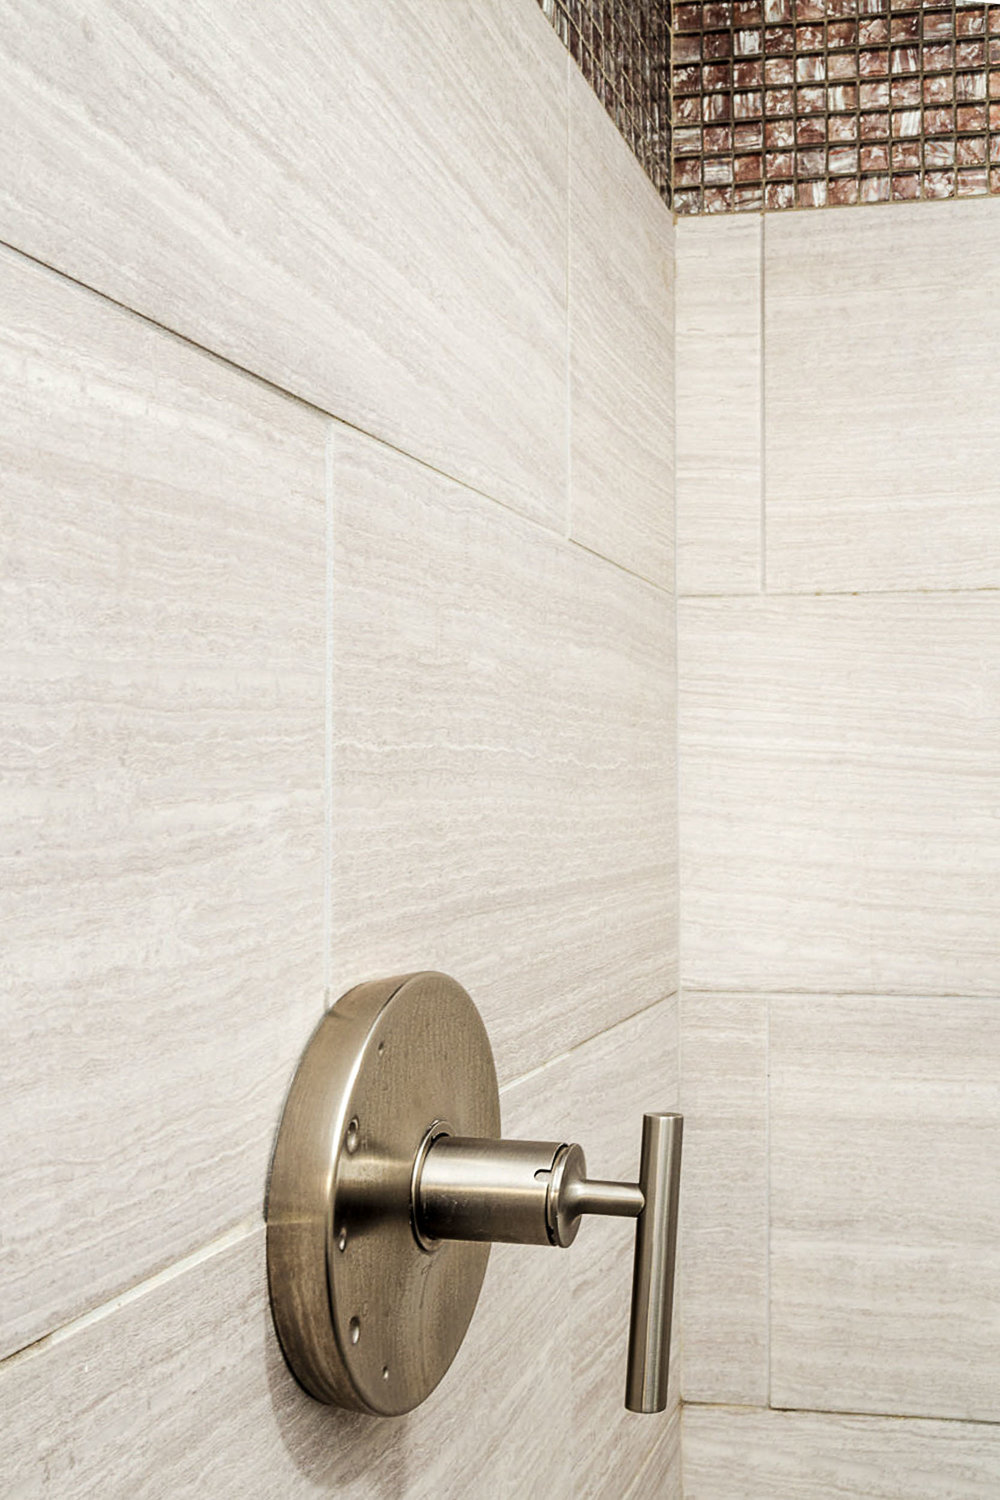 The plumbing fixtures are Kohler Vibrant Brushed Nickel with straight handle.